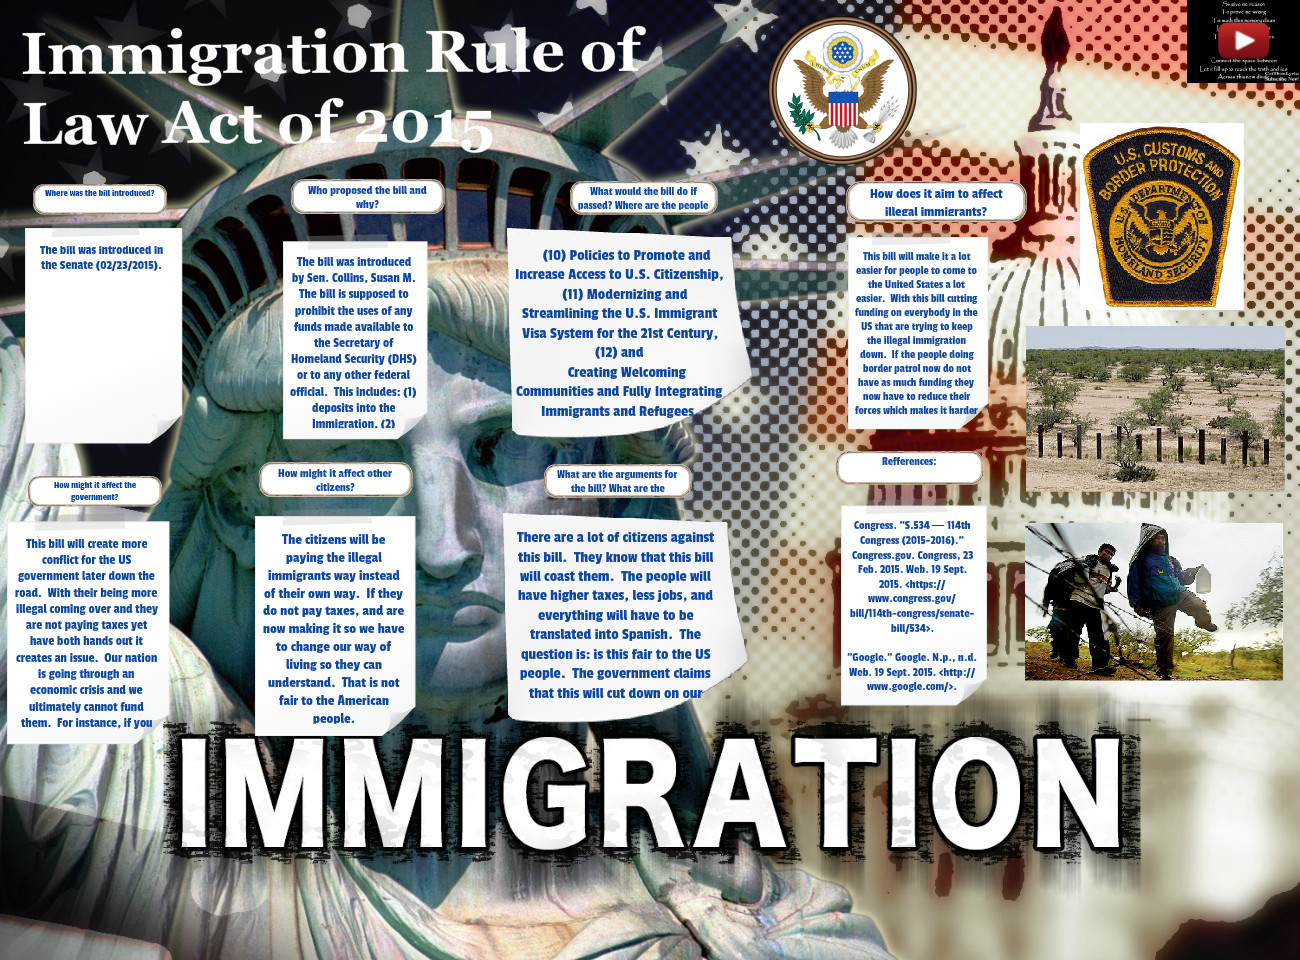 Immigration Rule of Law Act of 2015